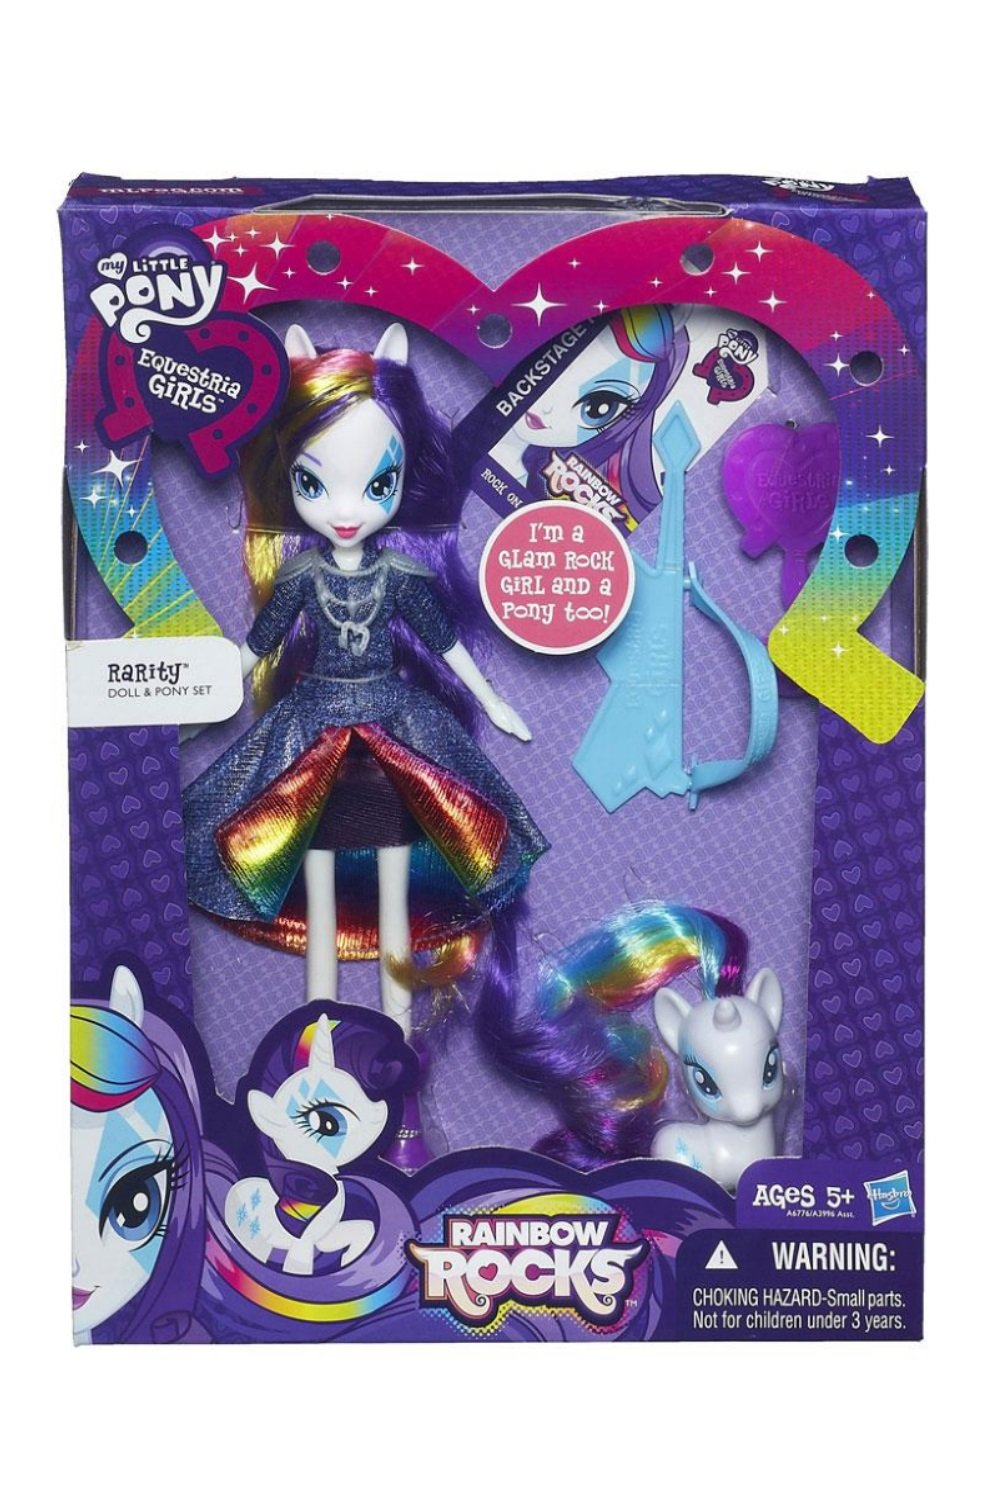 My Little Pony Equestria Girls Rarity Doll and Pony Set by